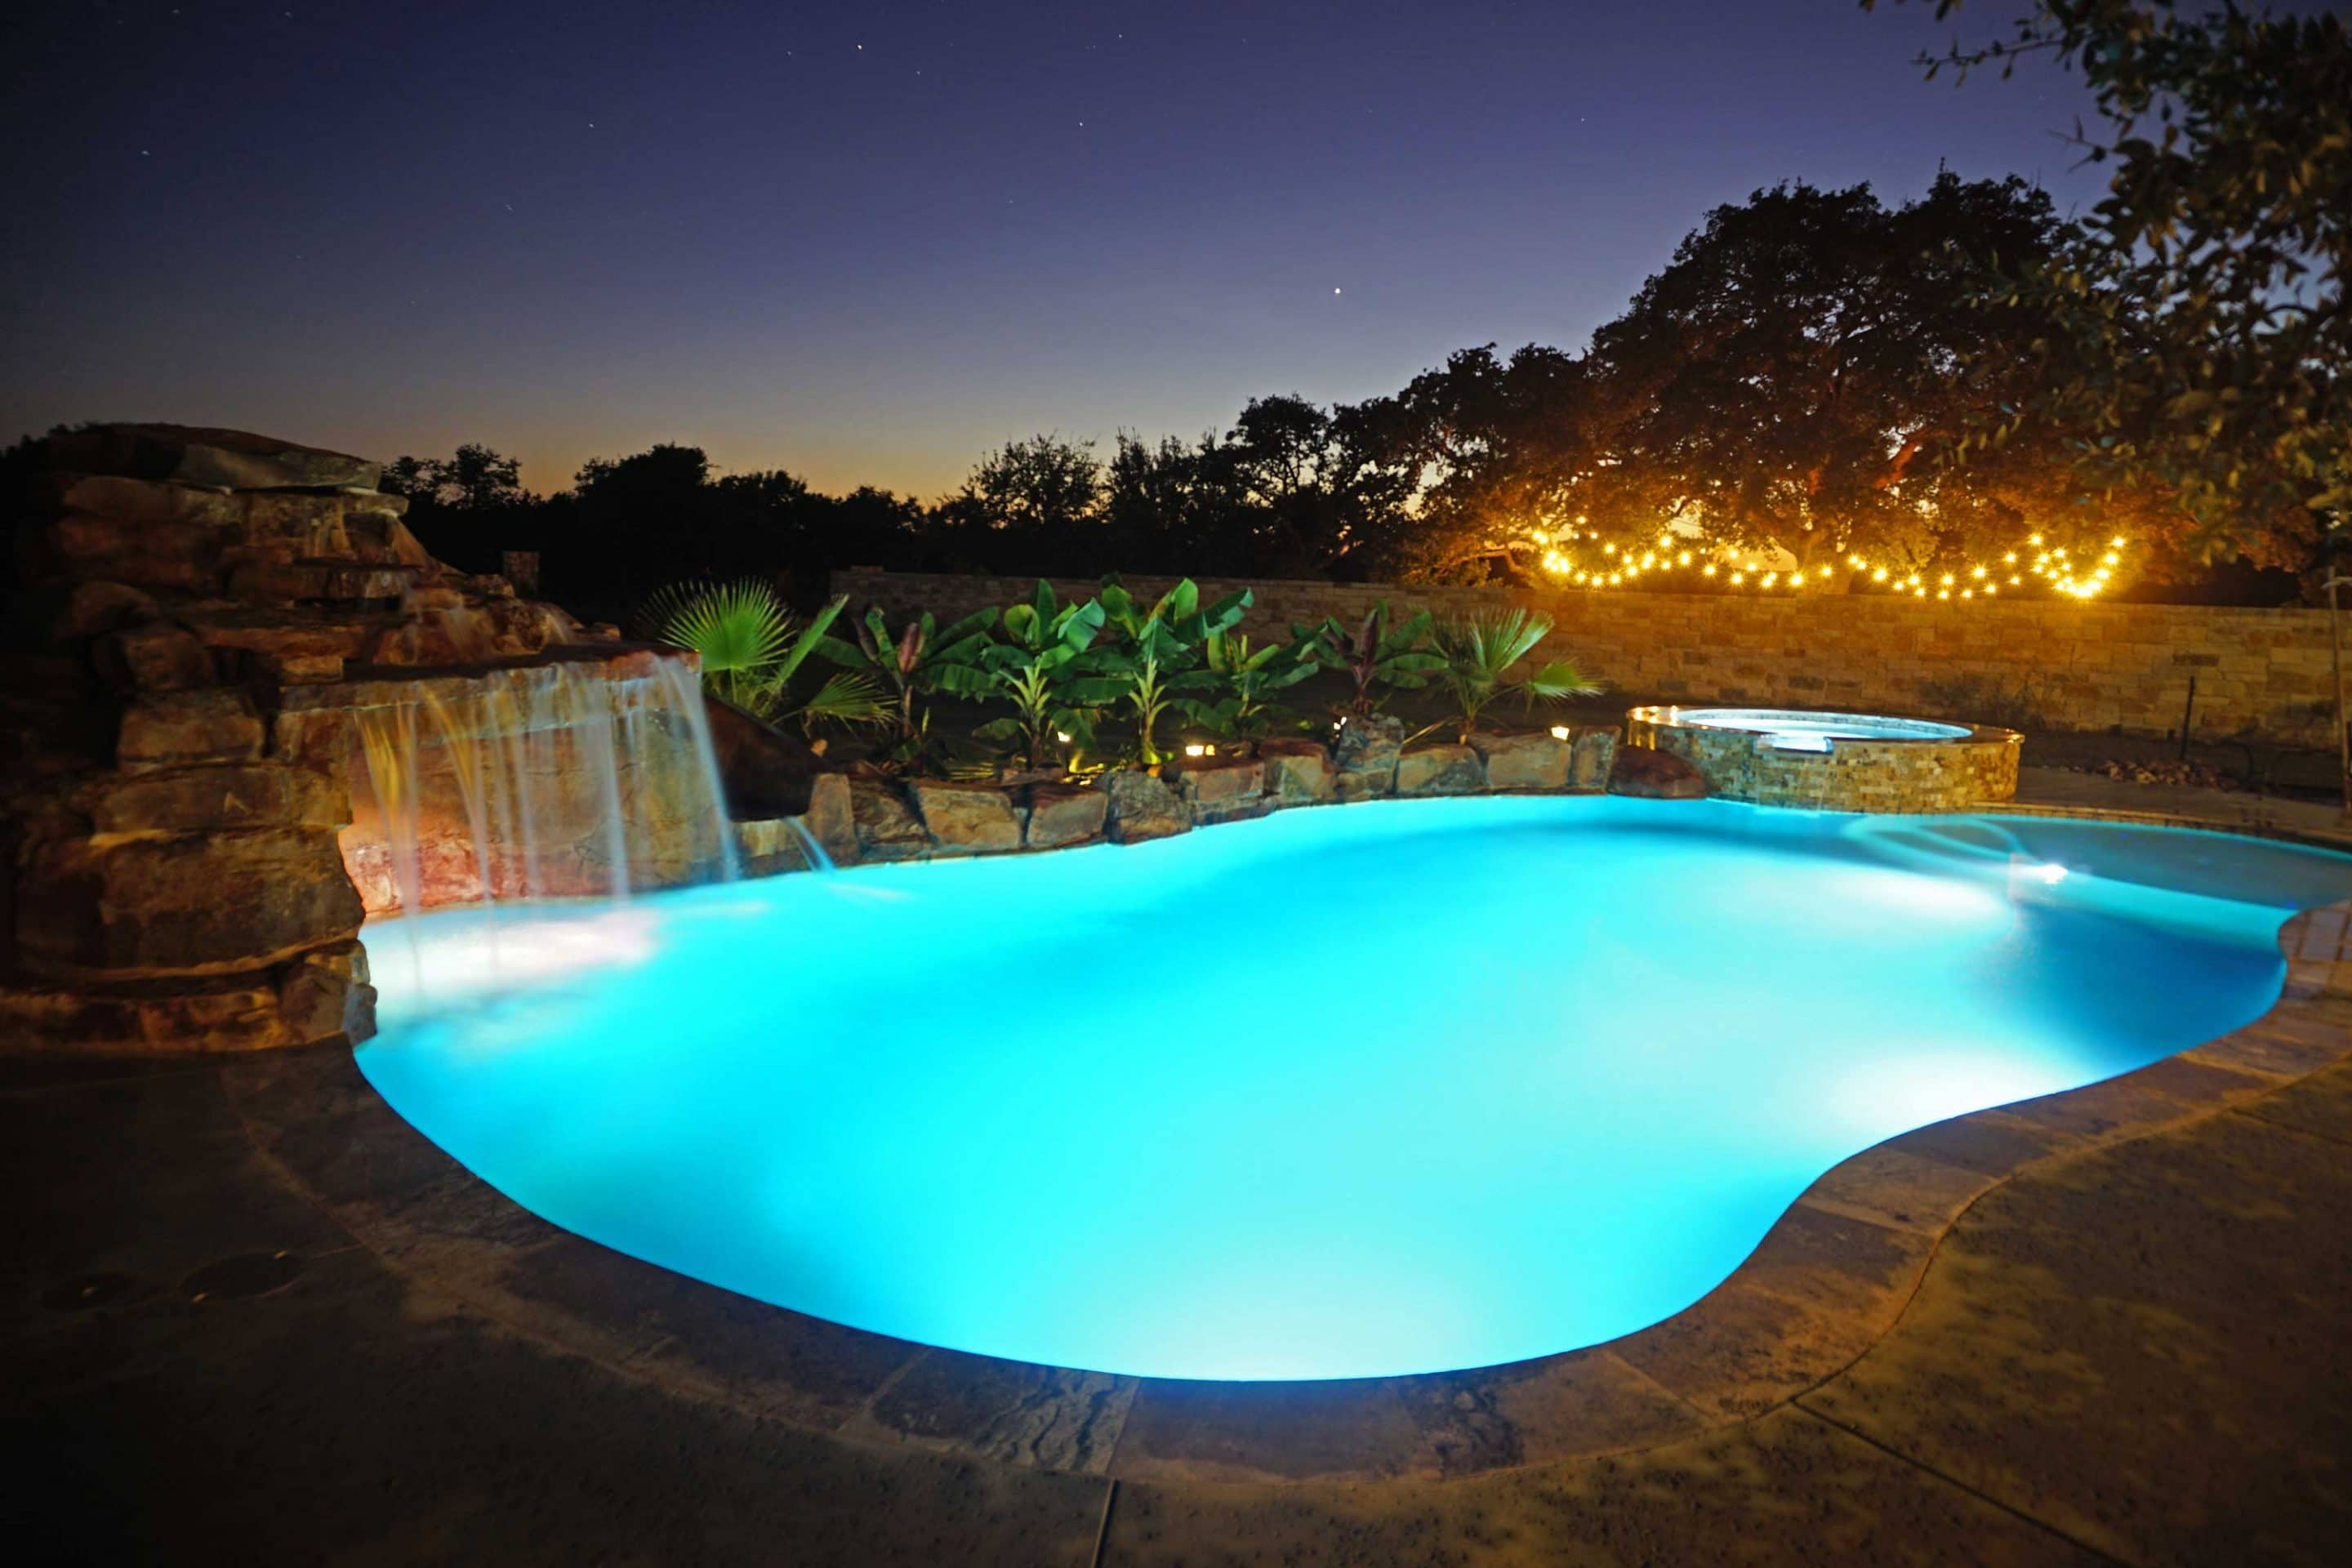 Led Lighting For Your Austin Texas Swimming Pool Reliant Pools Austin 39 S Custom Pool Builder